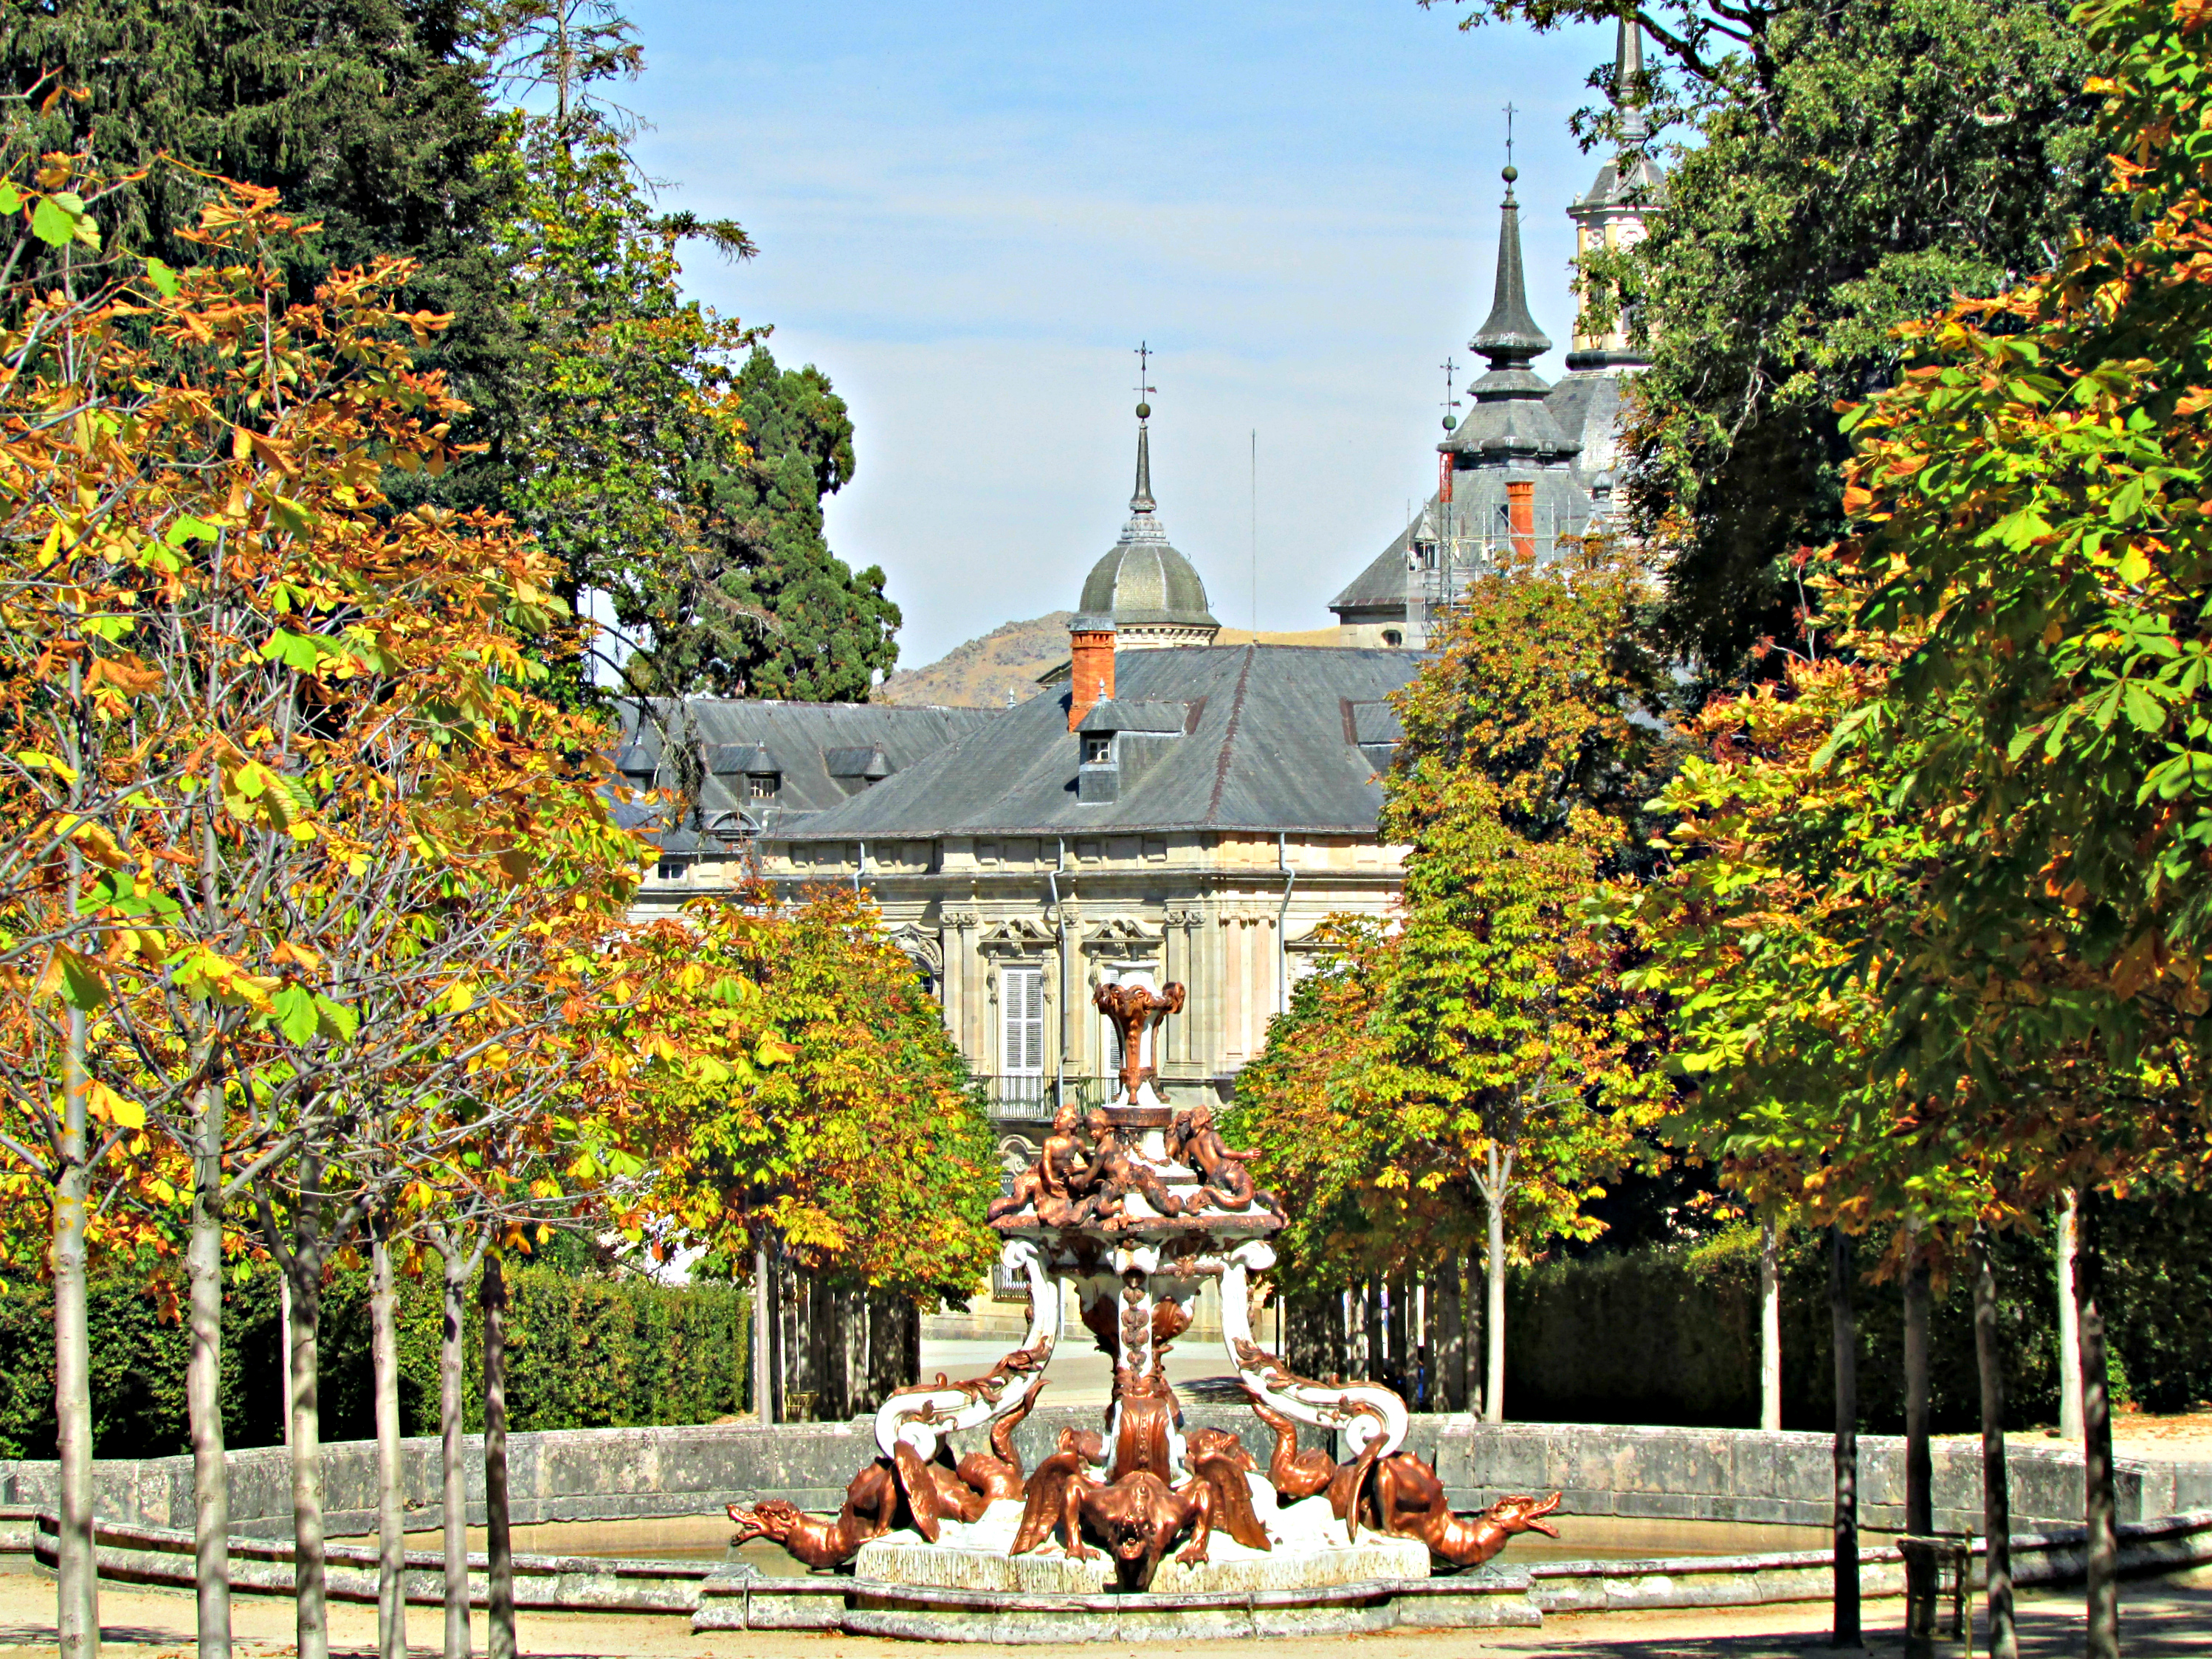 Fountain of the Dragons Royal Palace La Granja